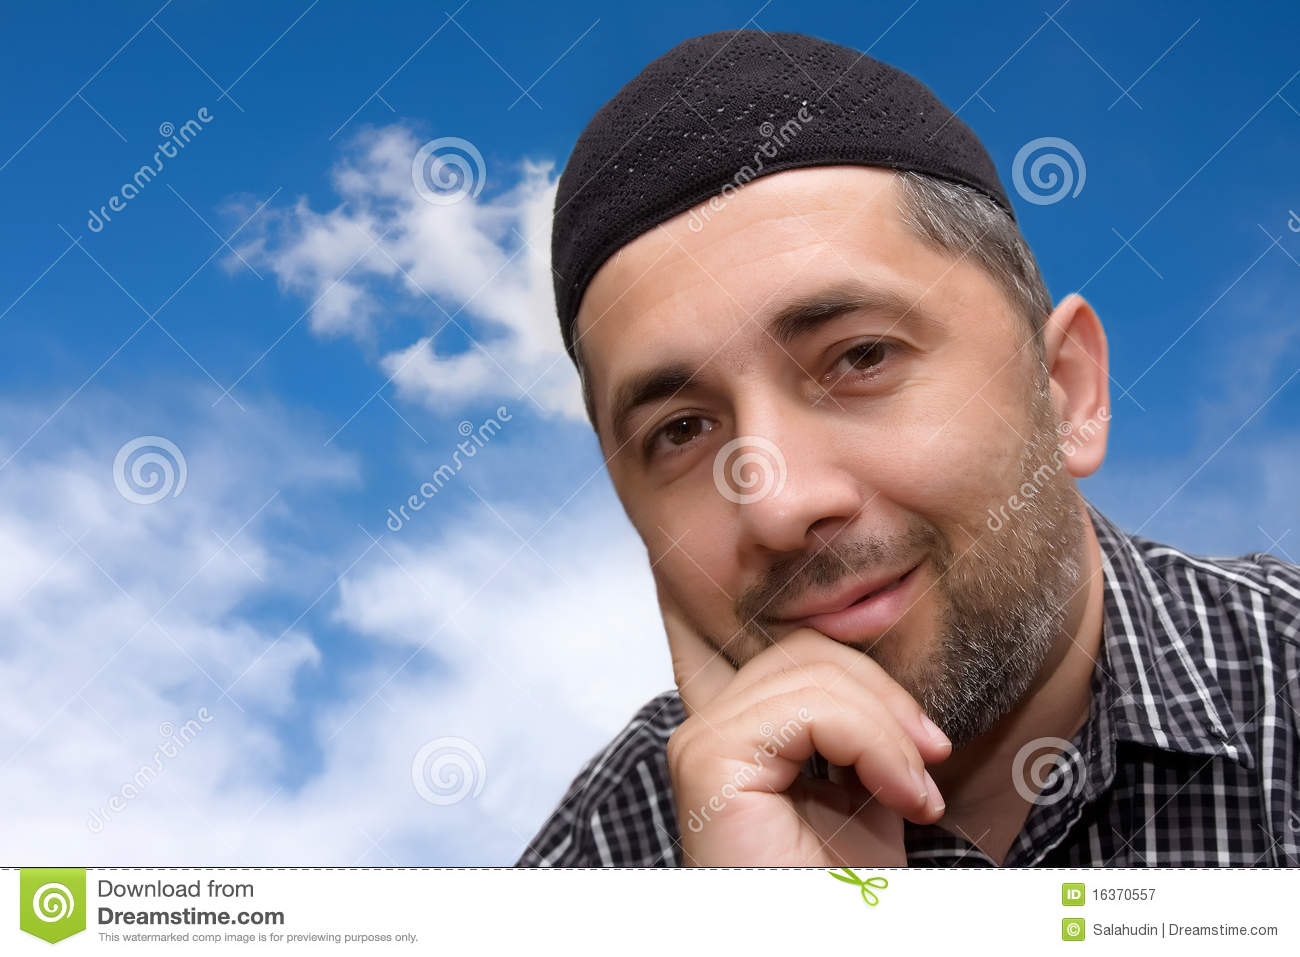 guys muslim 700 club channel, what woman who was raised as a god-fearing christian would purposefully marry a middle eastern muslim regrettably, katrina, who unknowingly became a muslim by marriage.